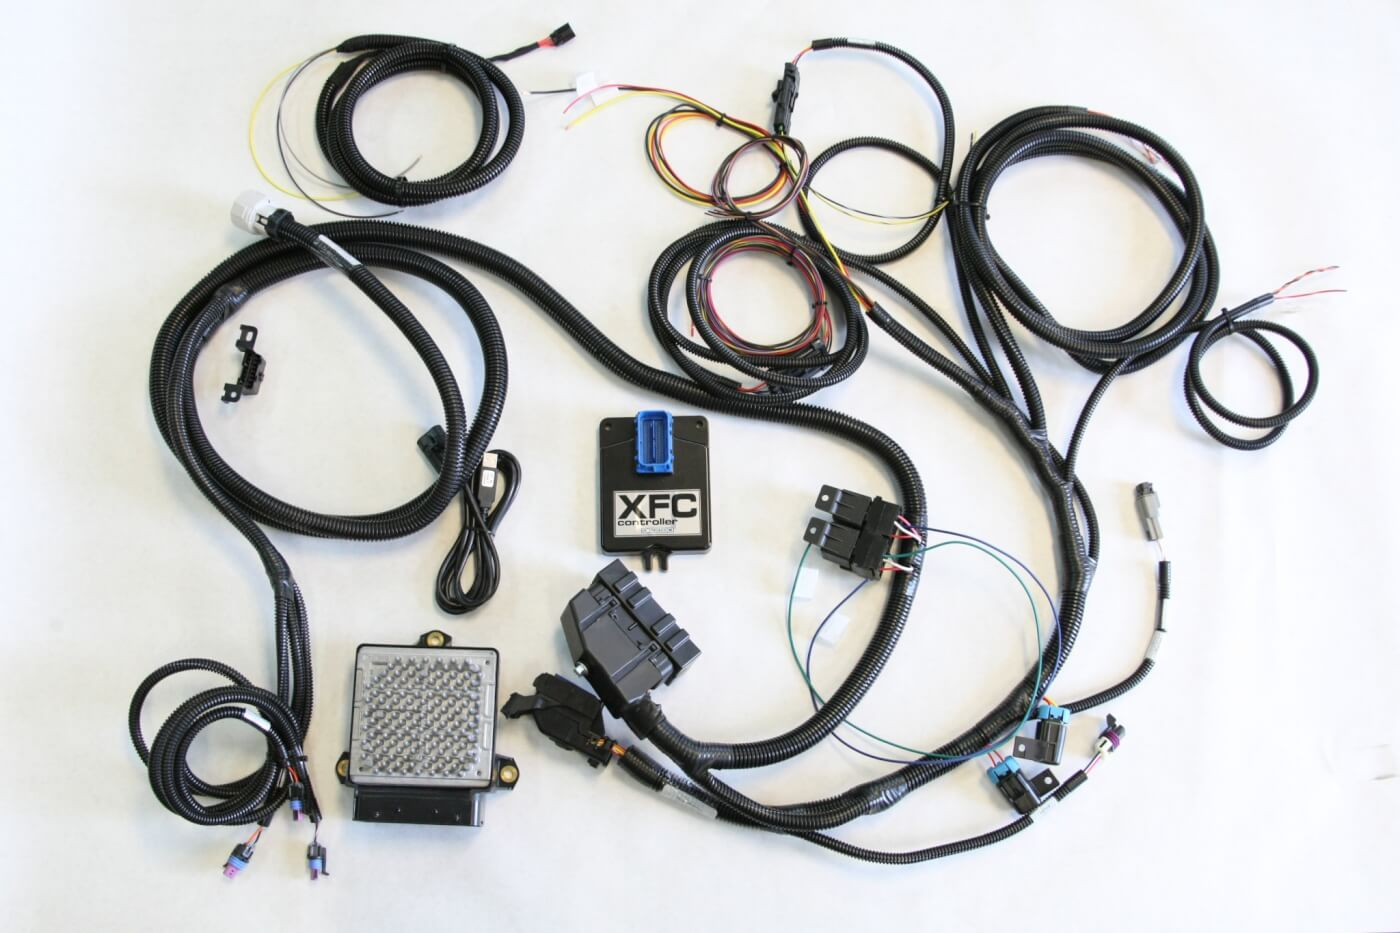 New Products Diesel Swaps Everything Youll Need To Pull Off A 2009 Ford F 150 Wire Harness Dw 1511 Prods 14